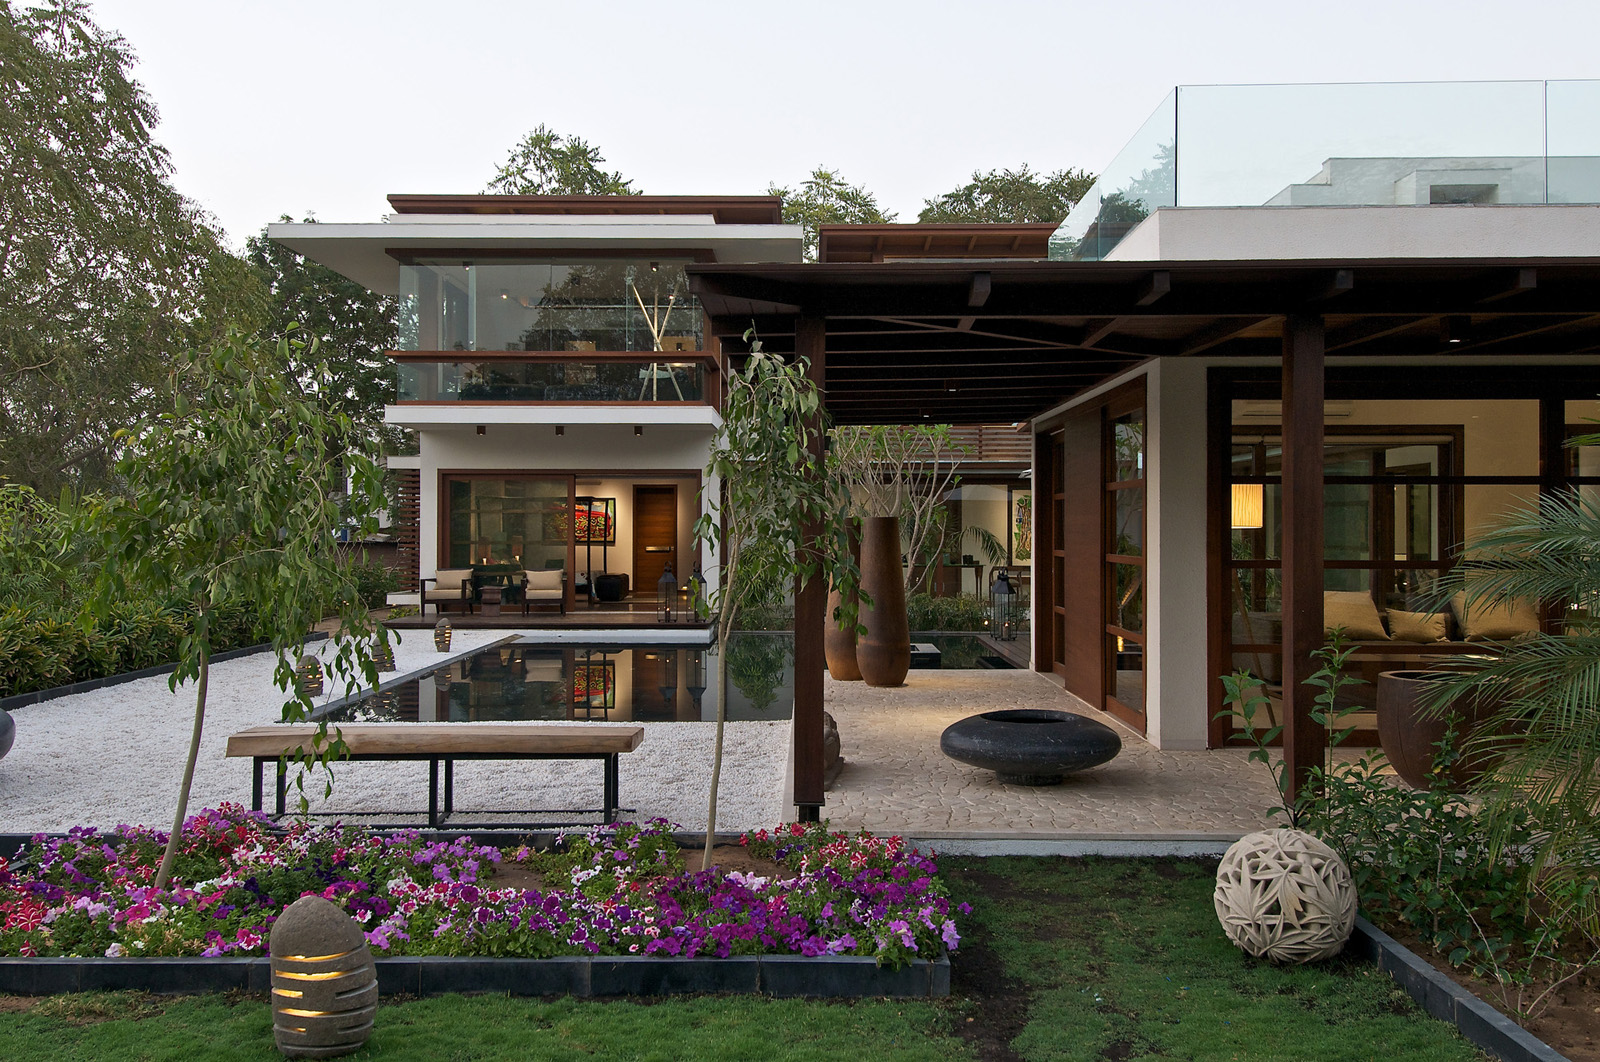 Timeless Contemporary House In India With Courtyard Zen Garden ... on antique southern homes, nice southern homes, french southern homes, modern farmhouse style house plans, contemporary homes, simple southern homes, elegant southern homes, old southern homes, grand southern homes, unique southern homes, gothic southern homes, colonial southern homes, black southern homes, retro southern homes, colonial style homes, 1940's southern homes, texas southern homes, funky southern homes, expensive southern homes, custom southern homes,